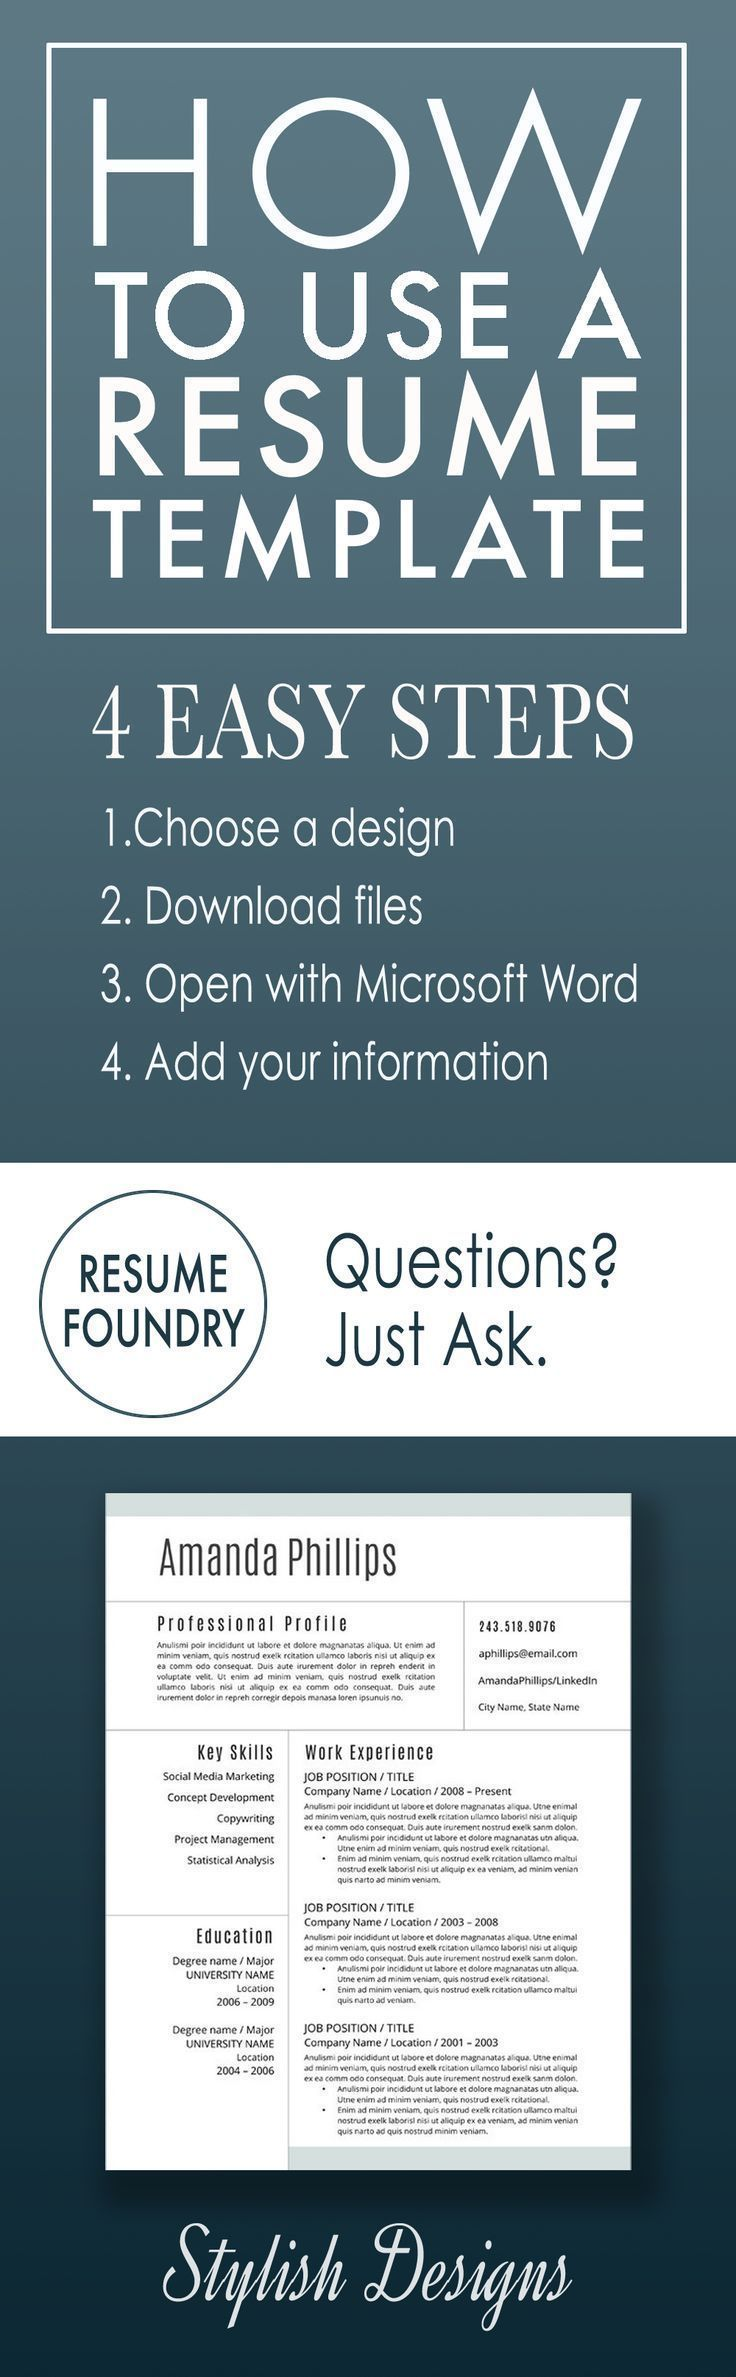 How to fill out a resume template in four easy steps